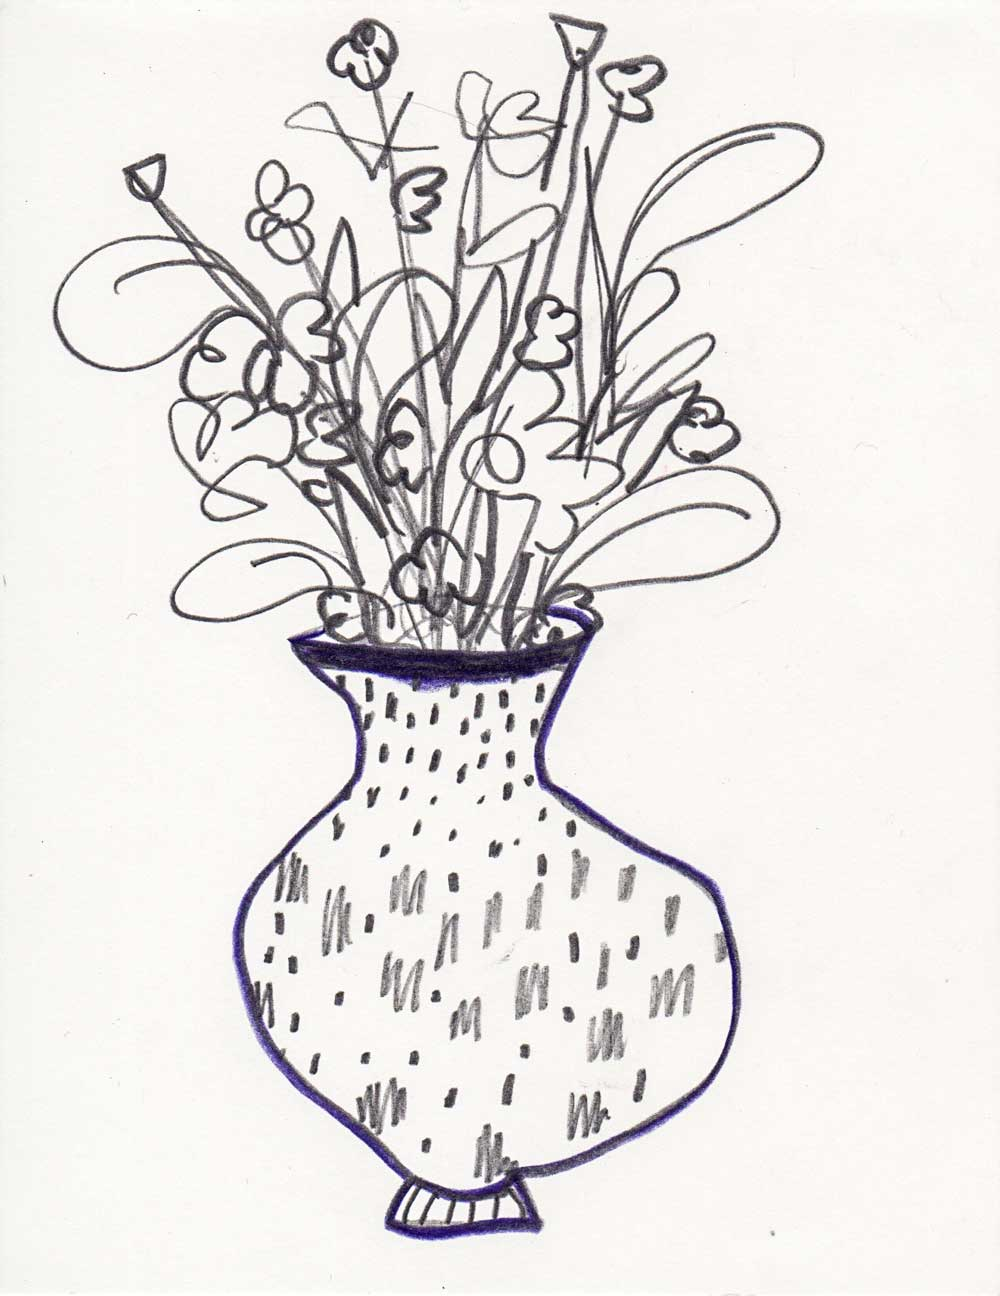 18-Scan-SmallDrawings-web-9